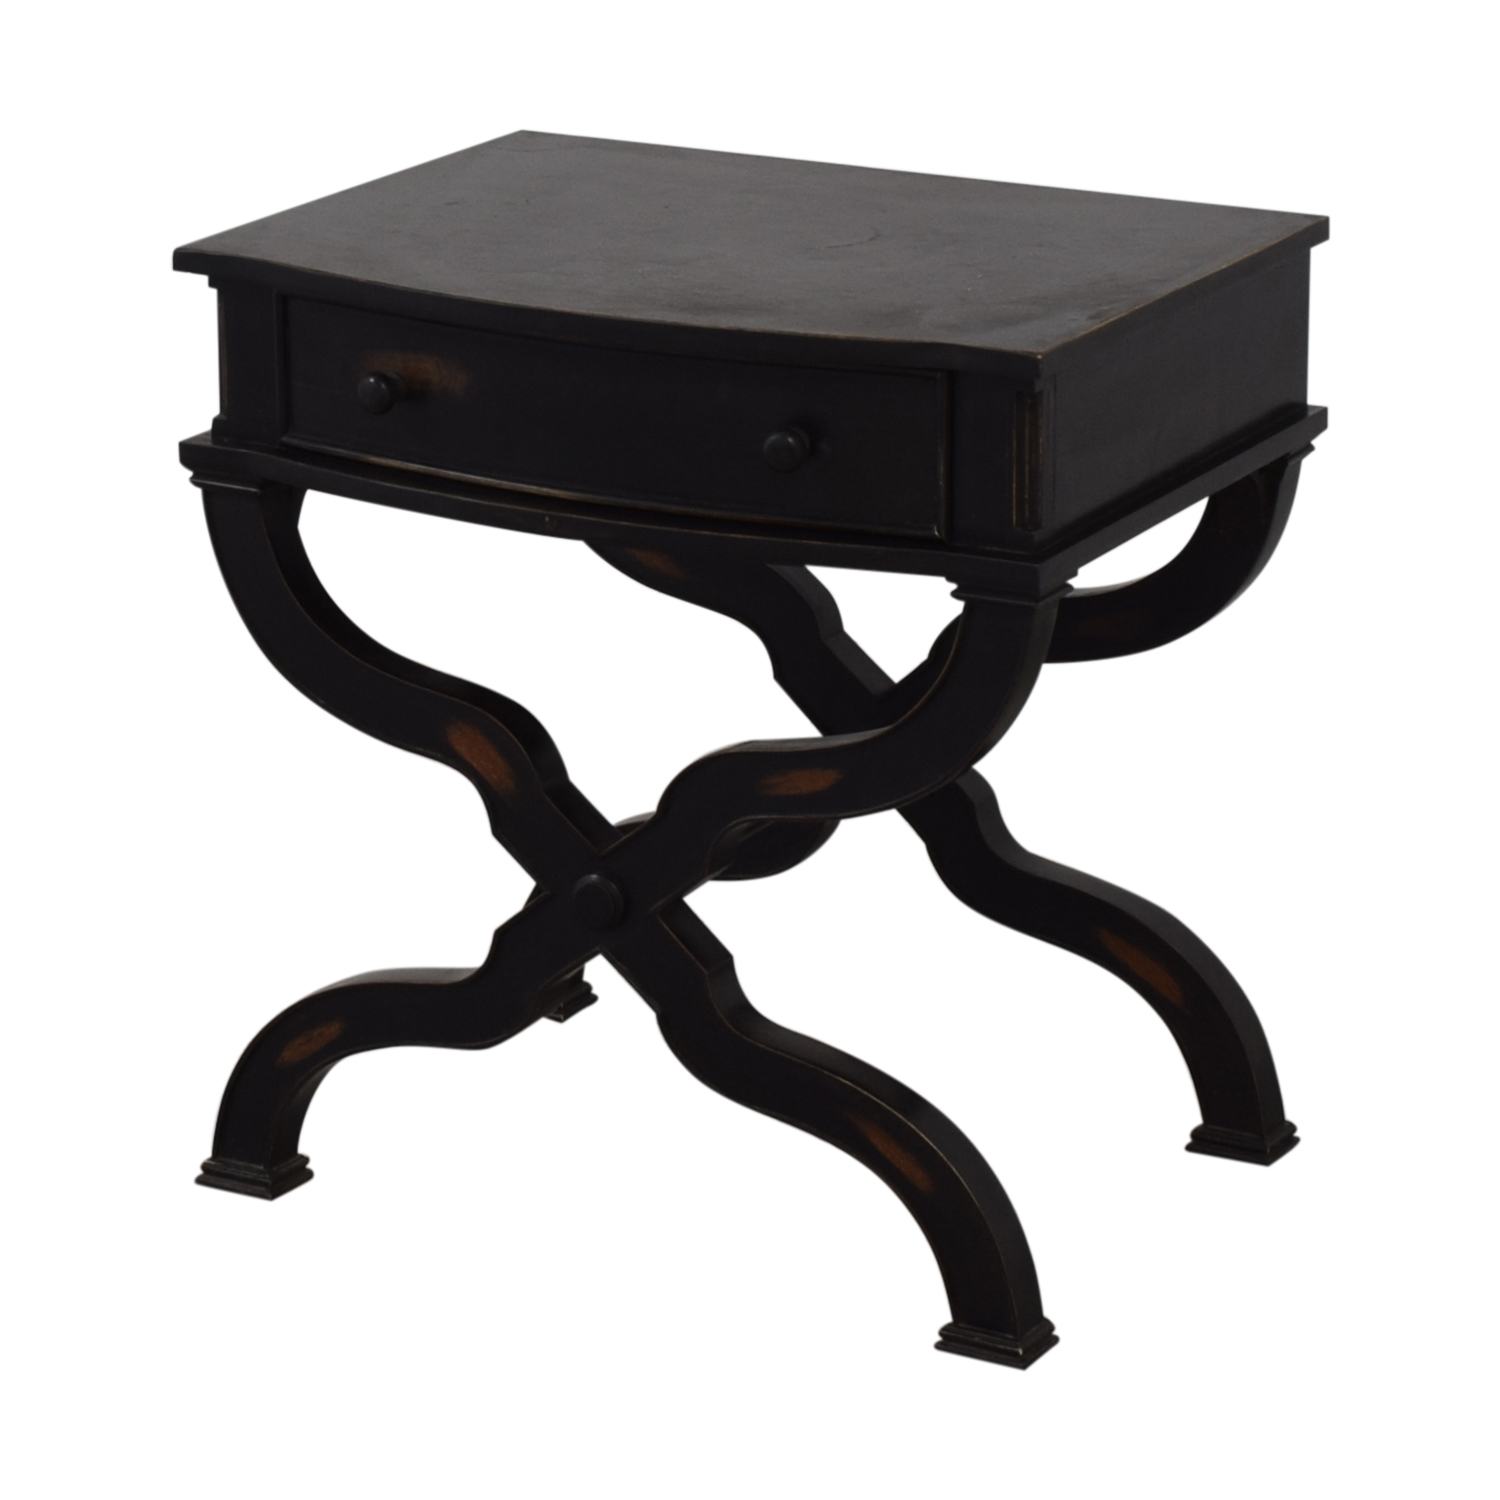 Neiman Marcus Nieman Marcus Distressed End Table price